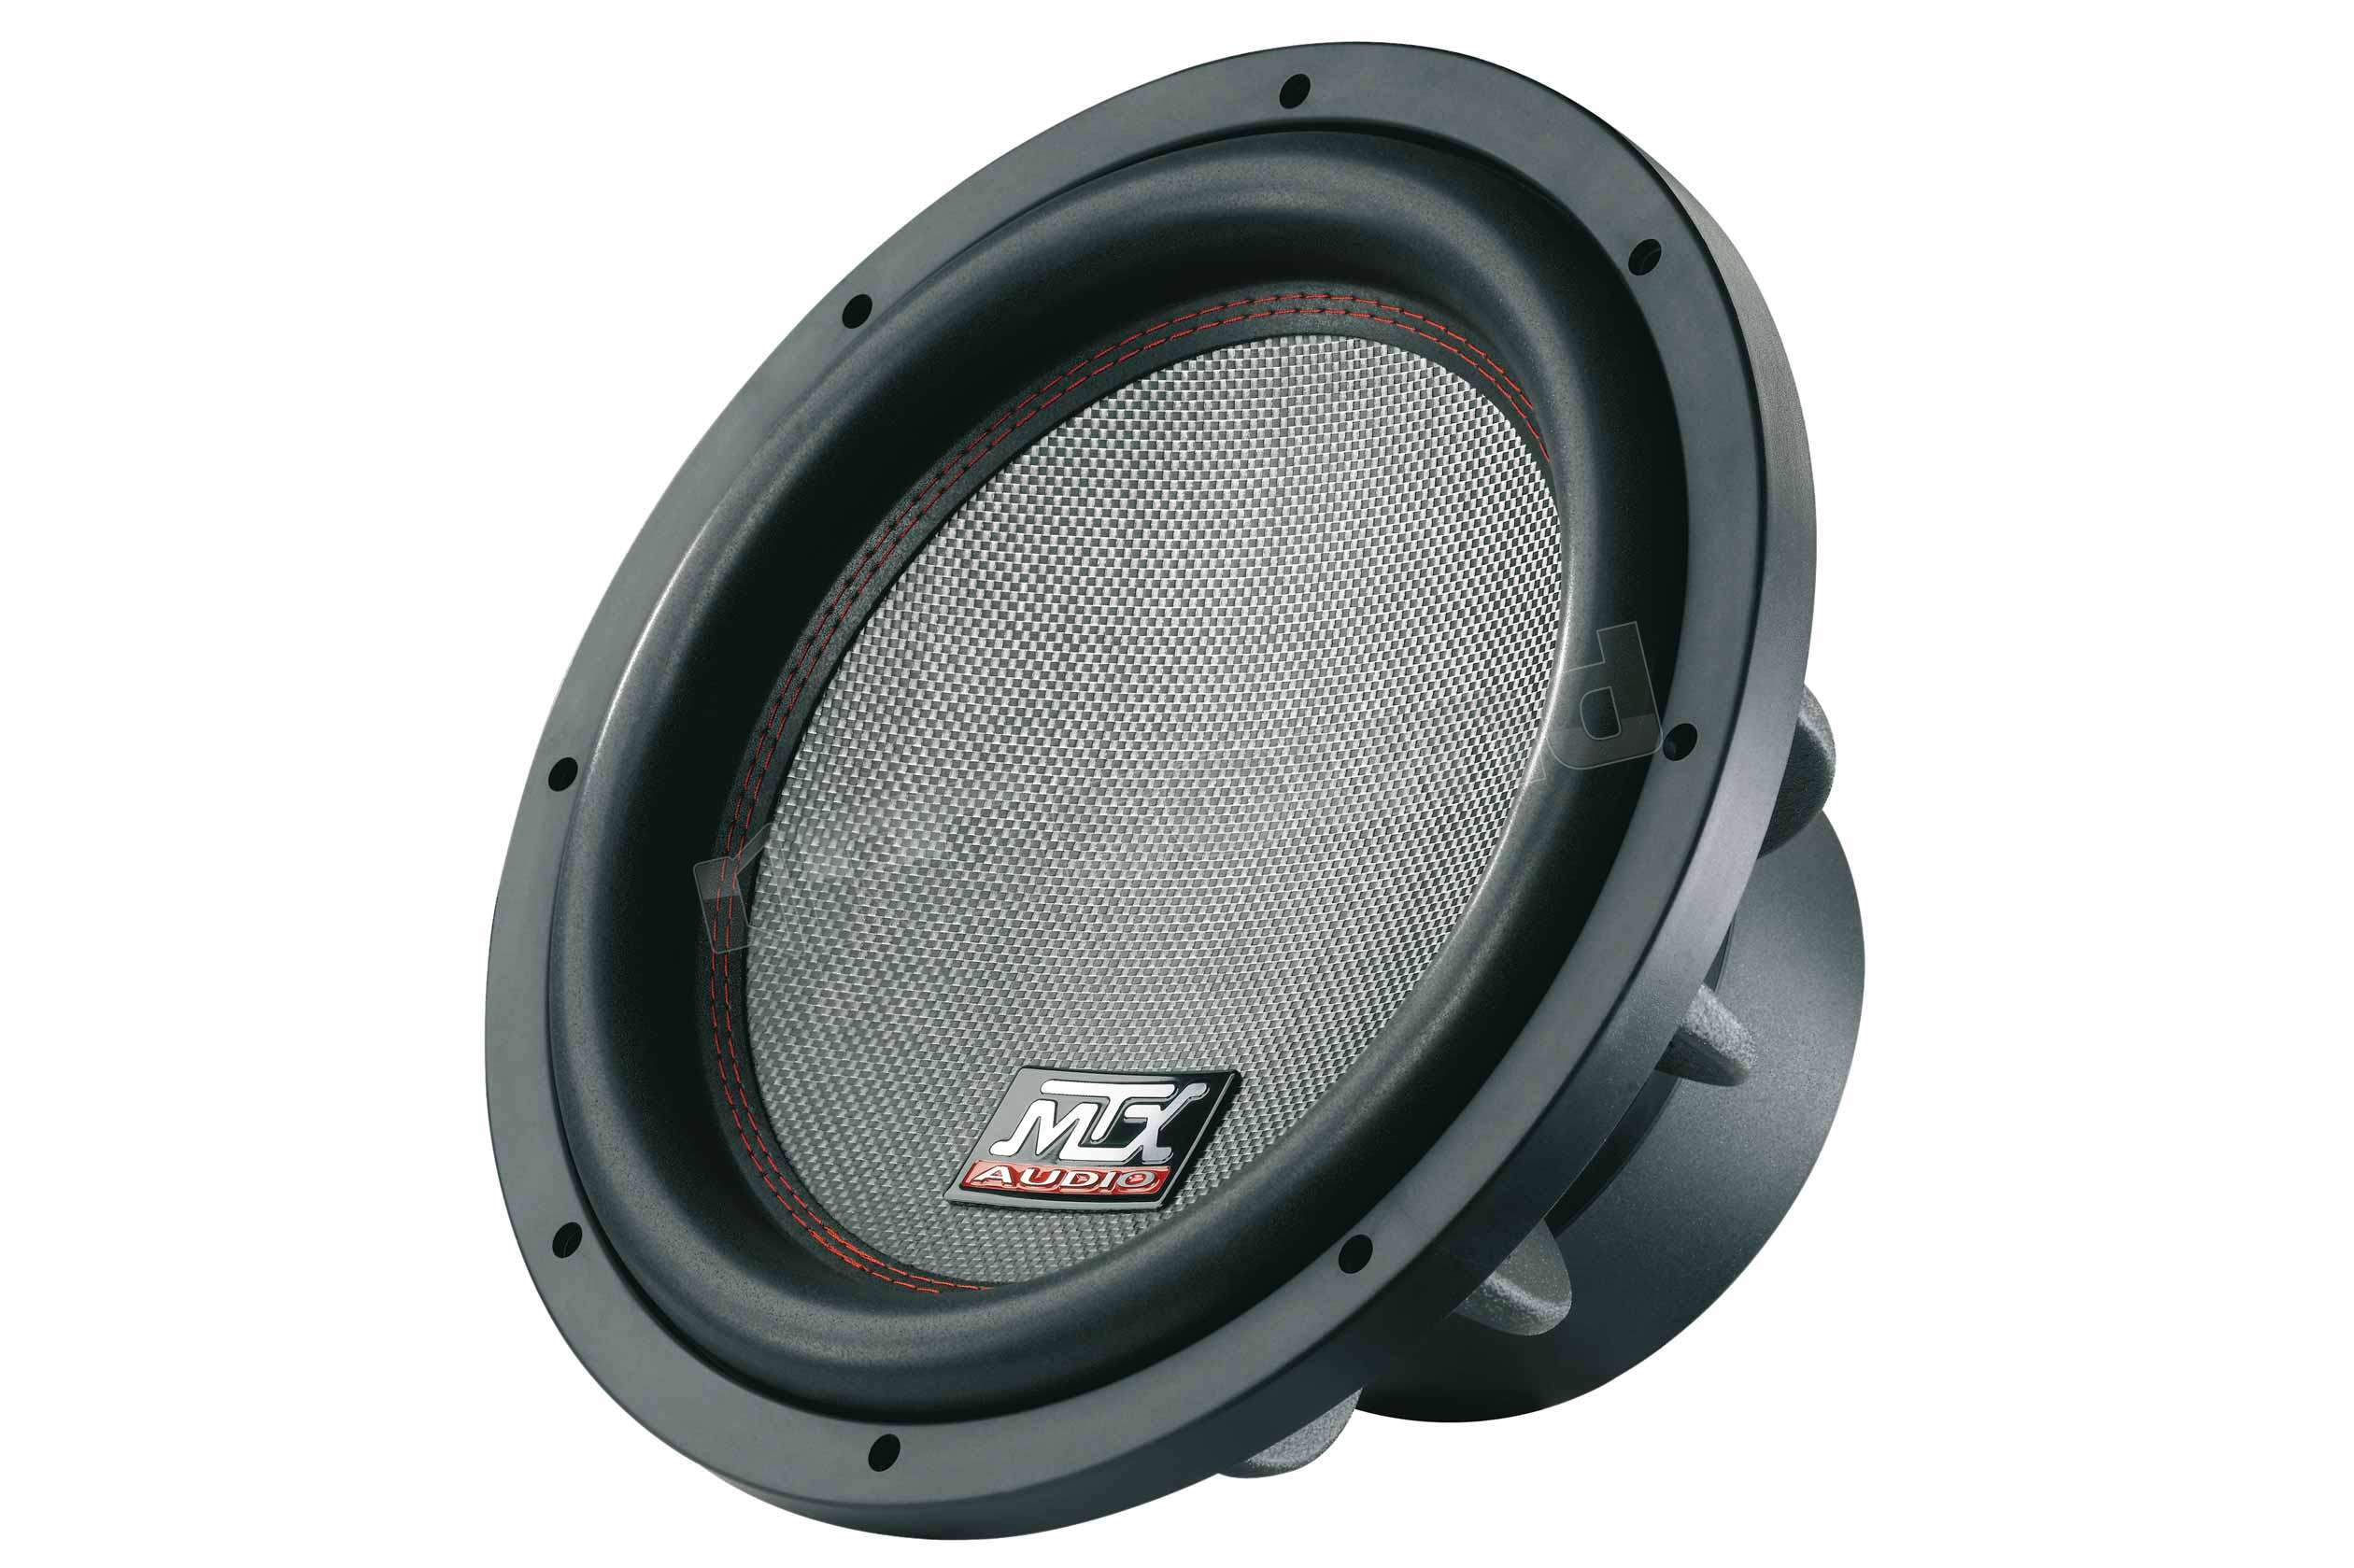 MTX audio TX 612 sub high performance 32cm | Subwoofer ...